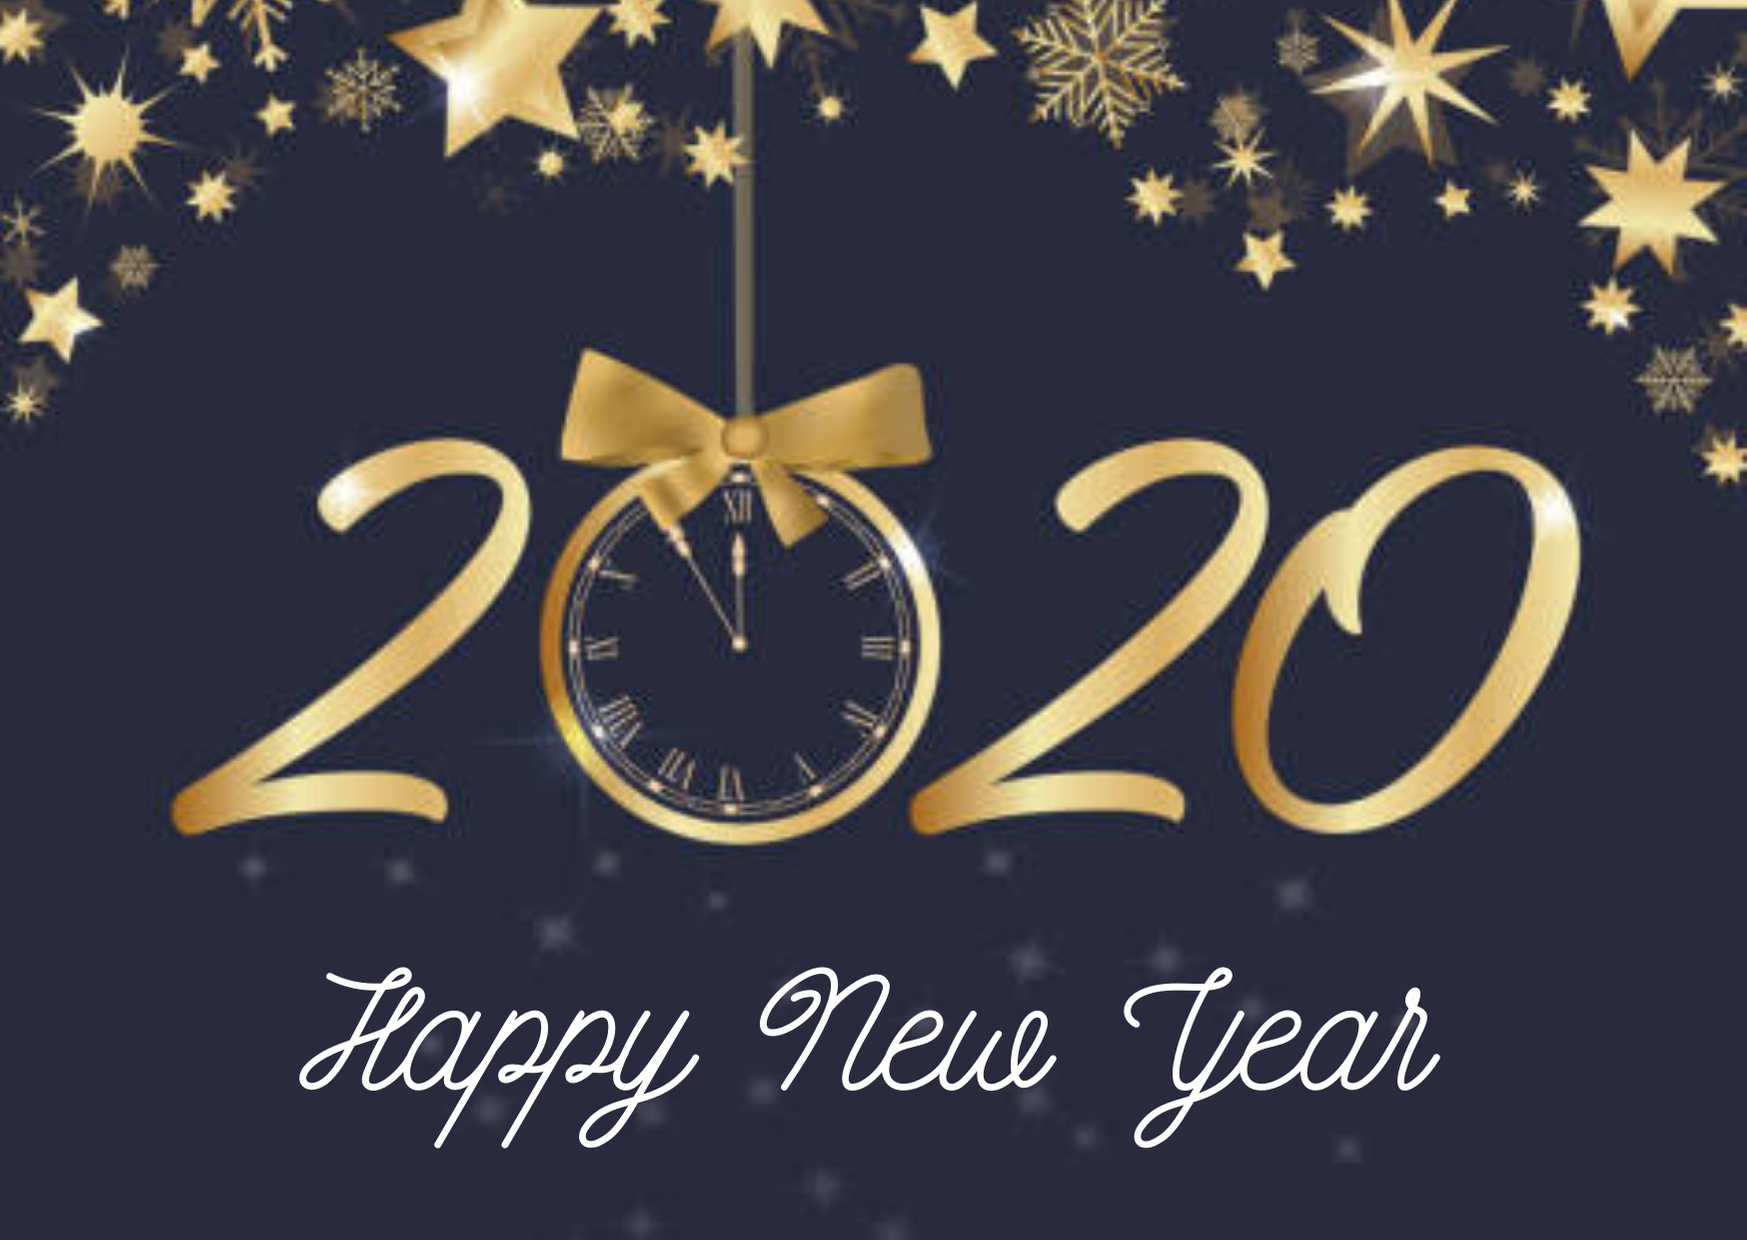 Happy New Year Wishes For Family